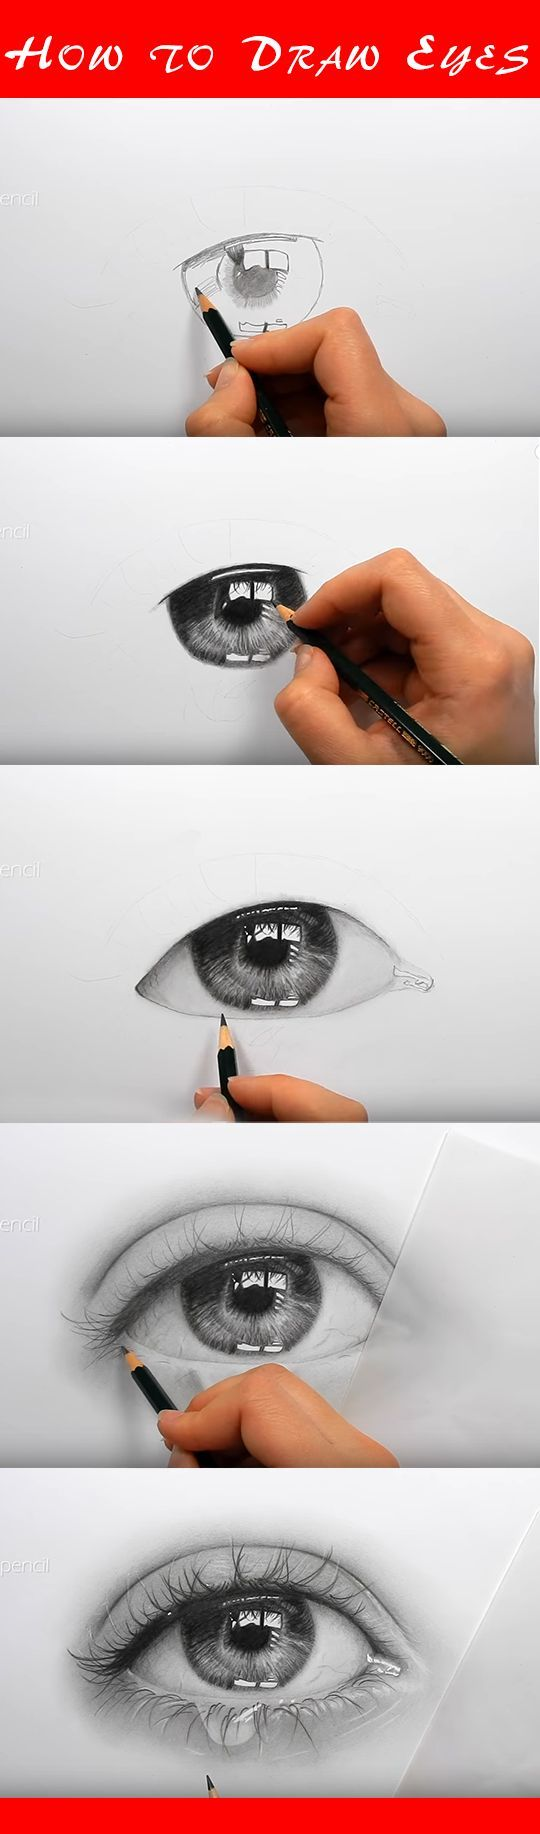 Drawn room pencil drawing On the Best mind in